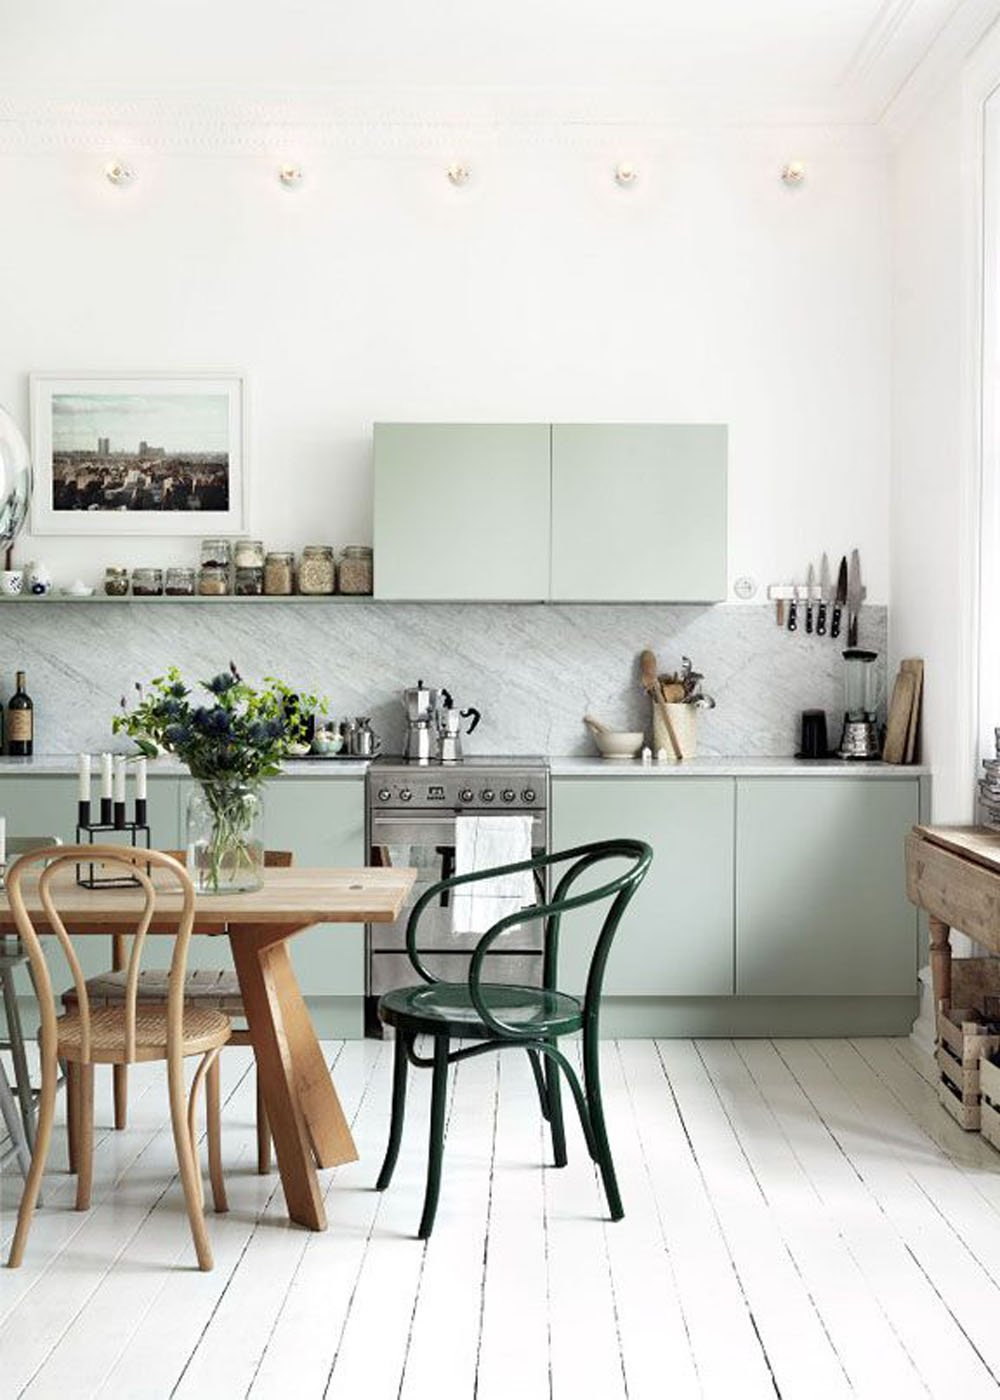 Green bentwood chairs in the kitchen via Petra Bindel